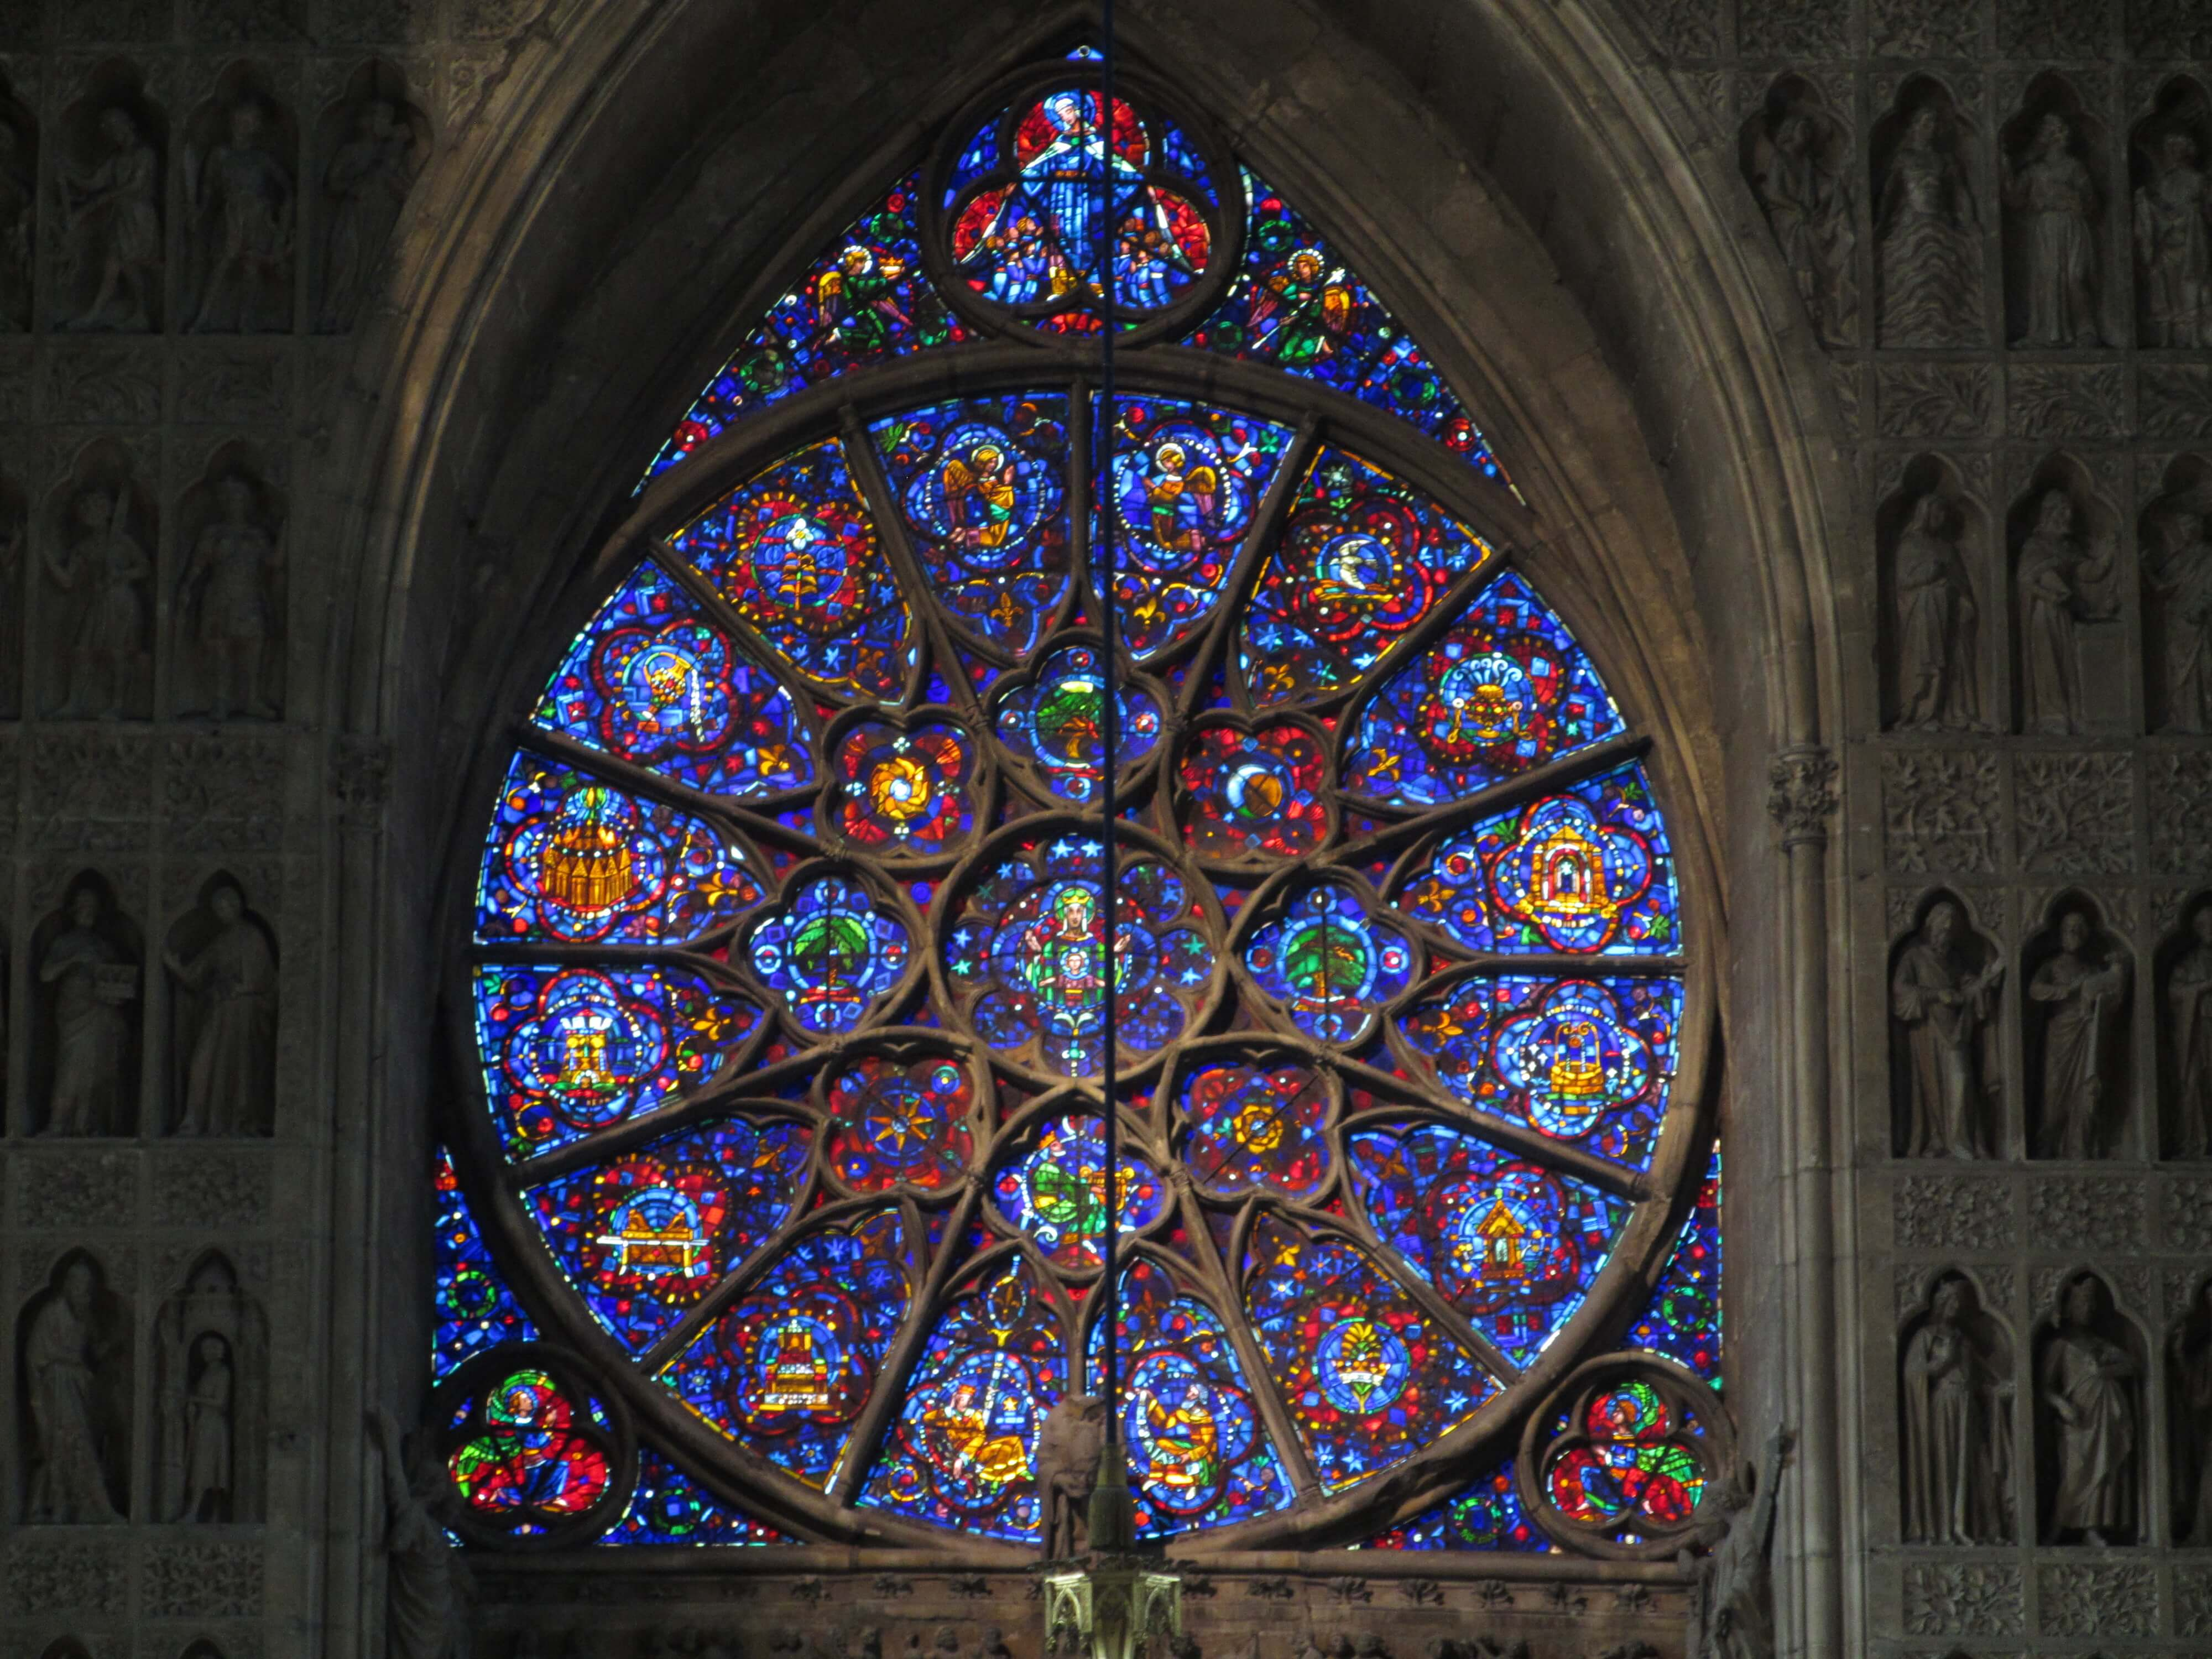 One of two rose windows, both dedicated to the Virgin Mary